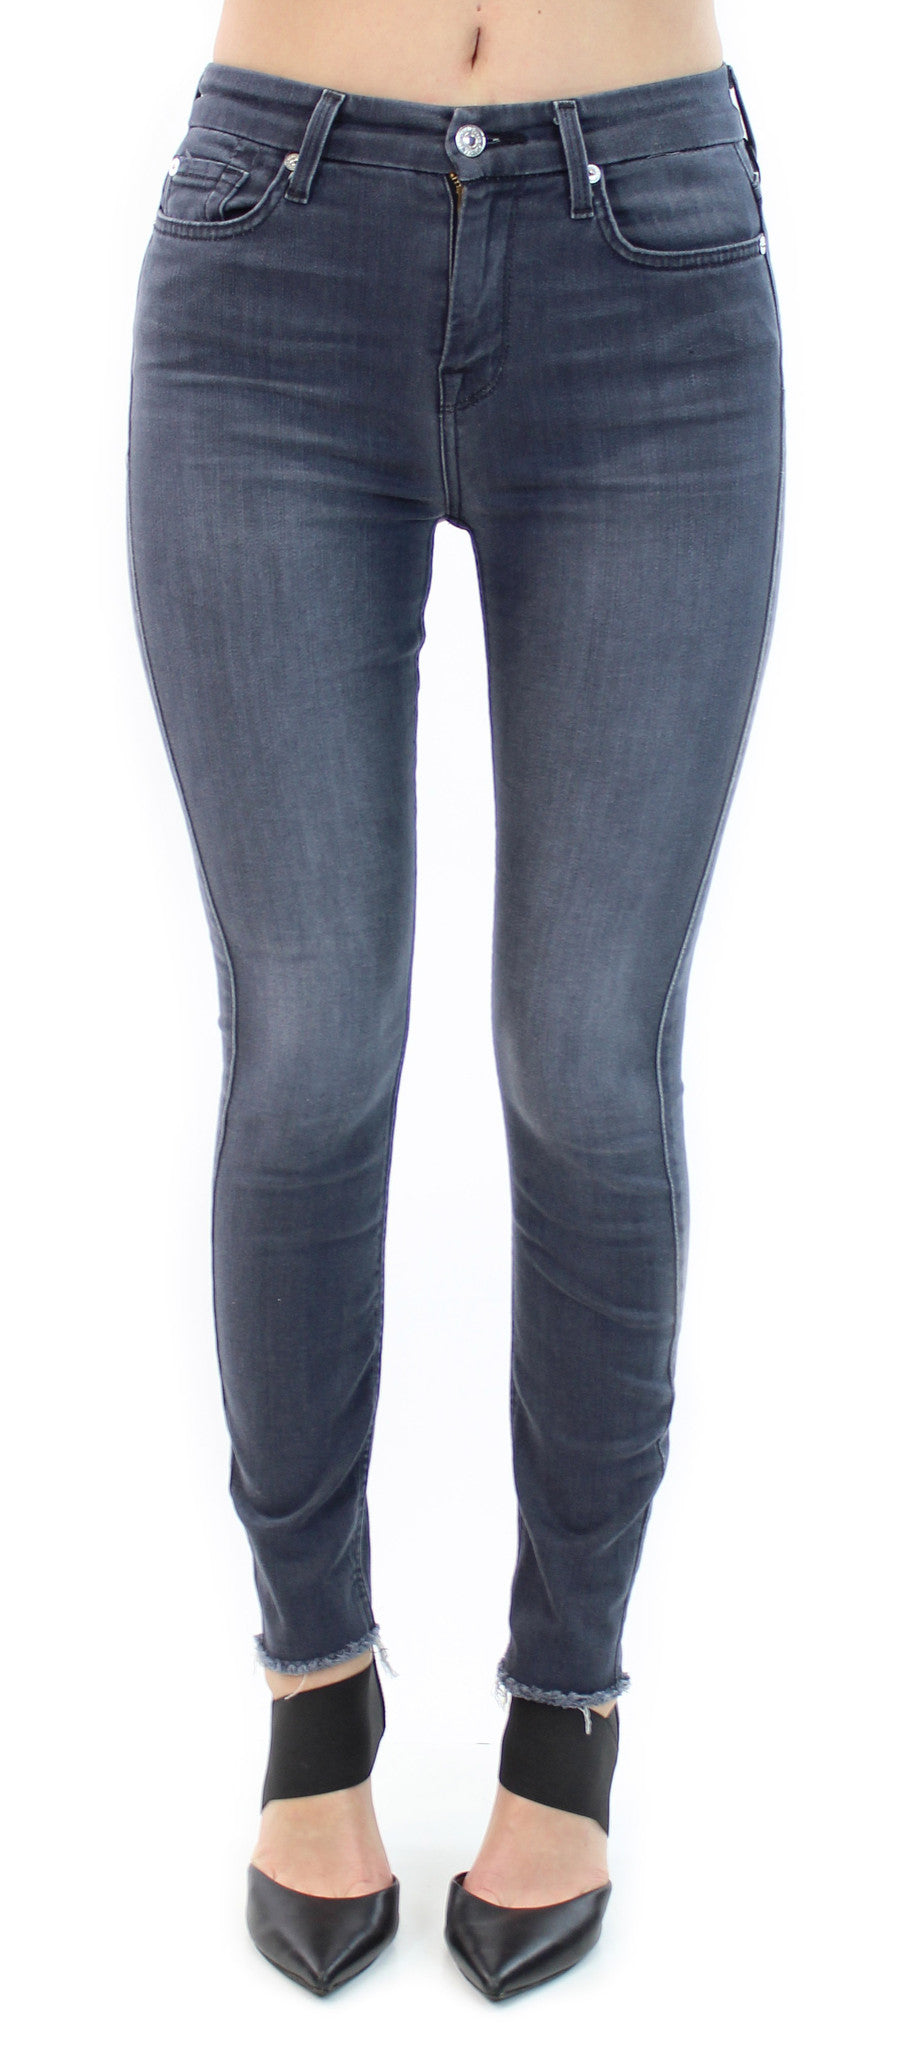 7 for all mankind | high waist ankle skinny cobble stone grey - klōthe - 1